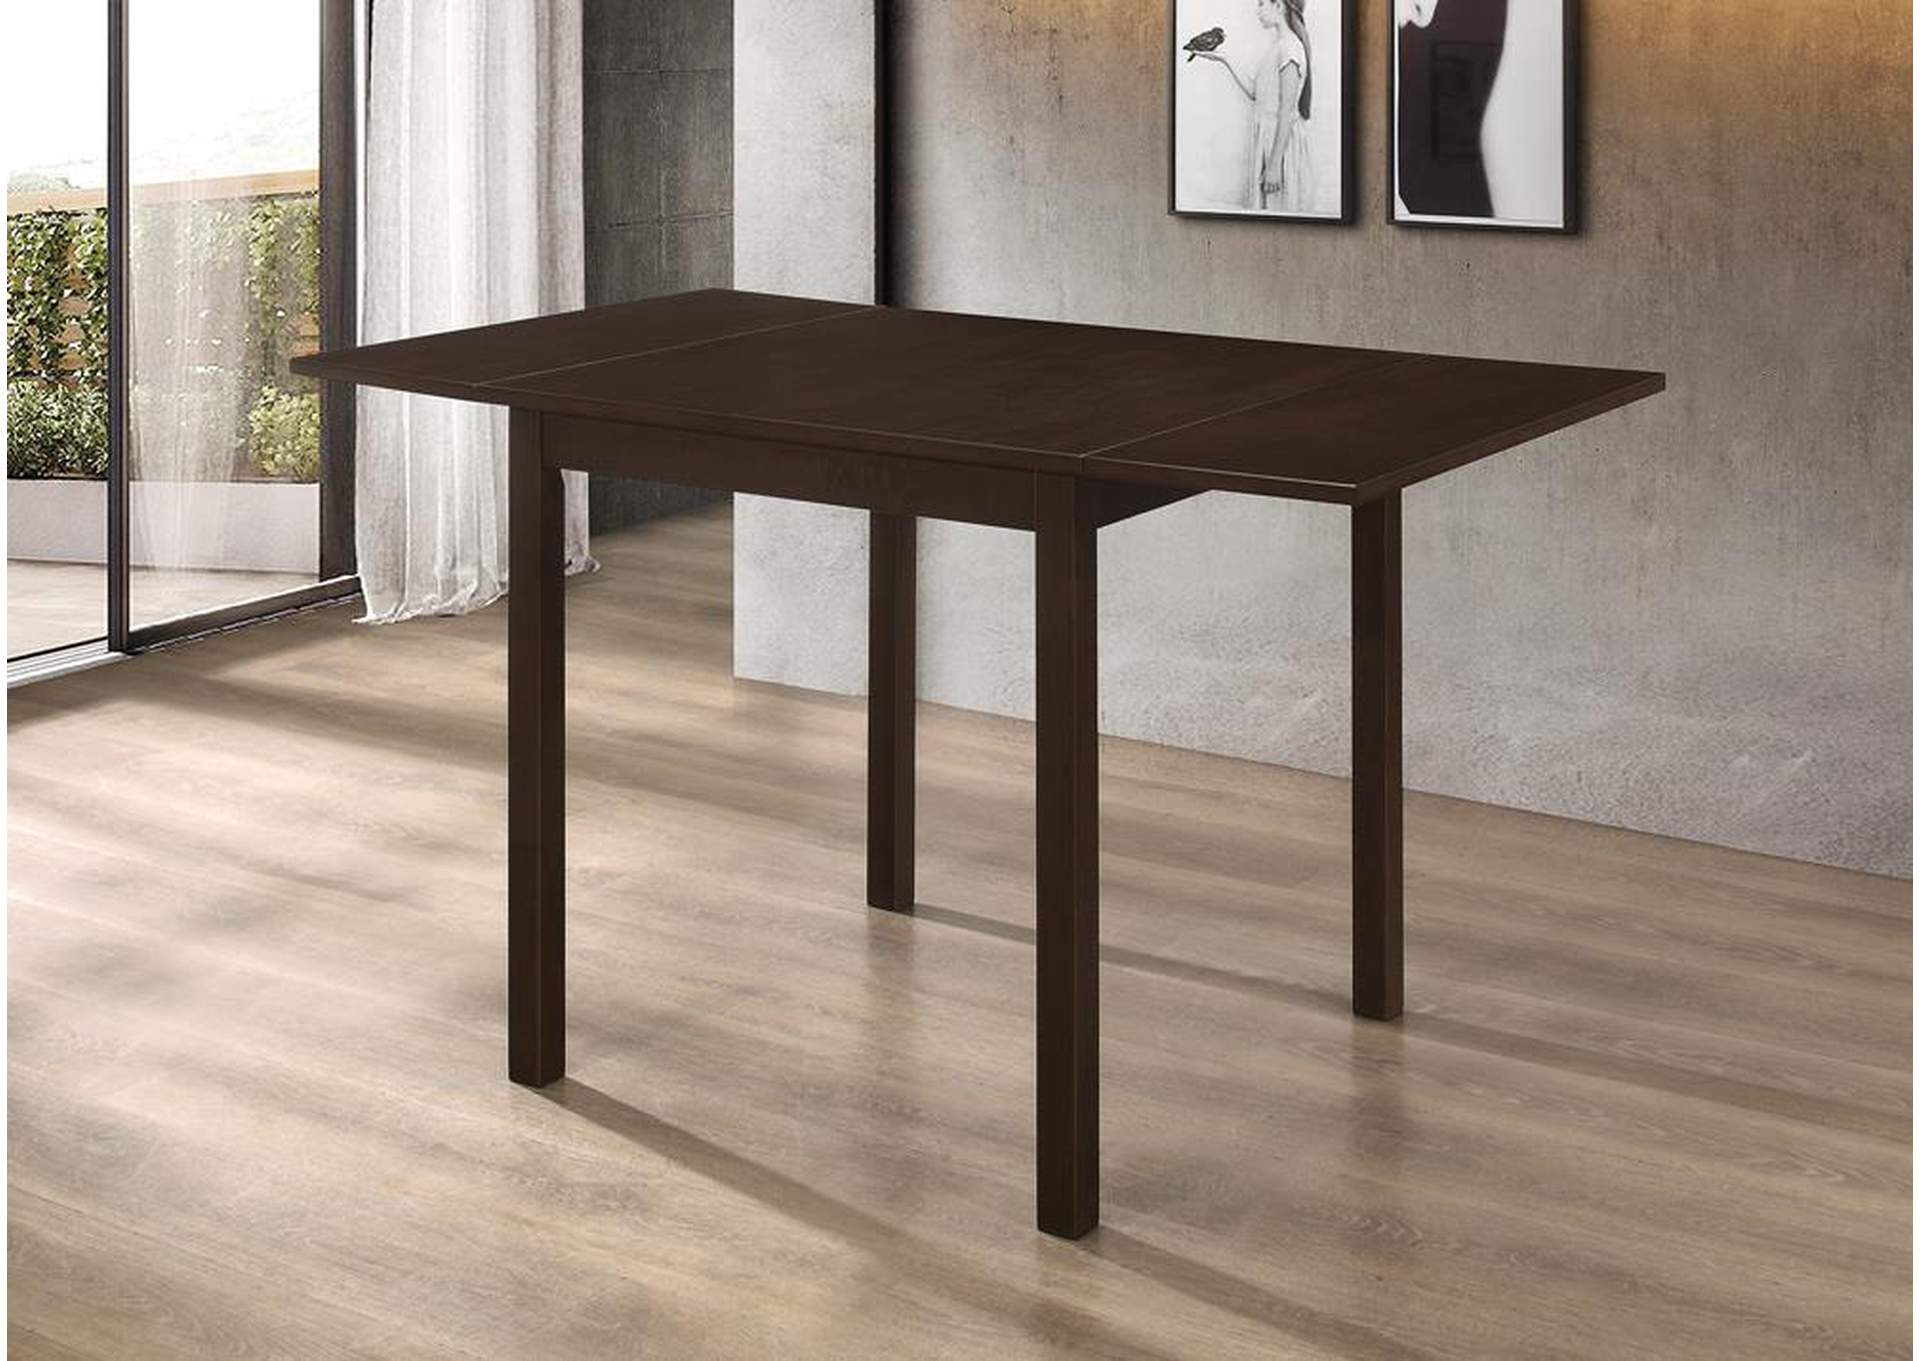 Kelso Cappuccino Dining Table,Coaster Furniture